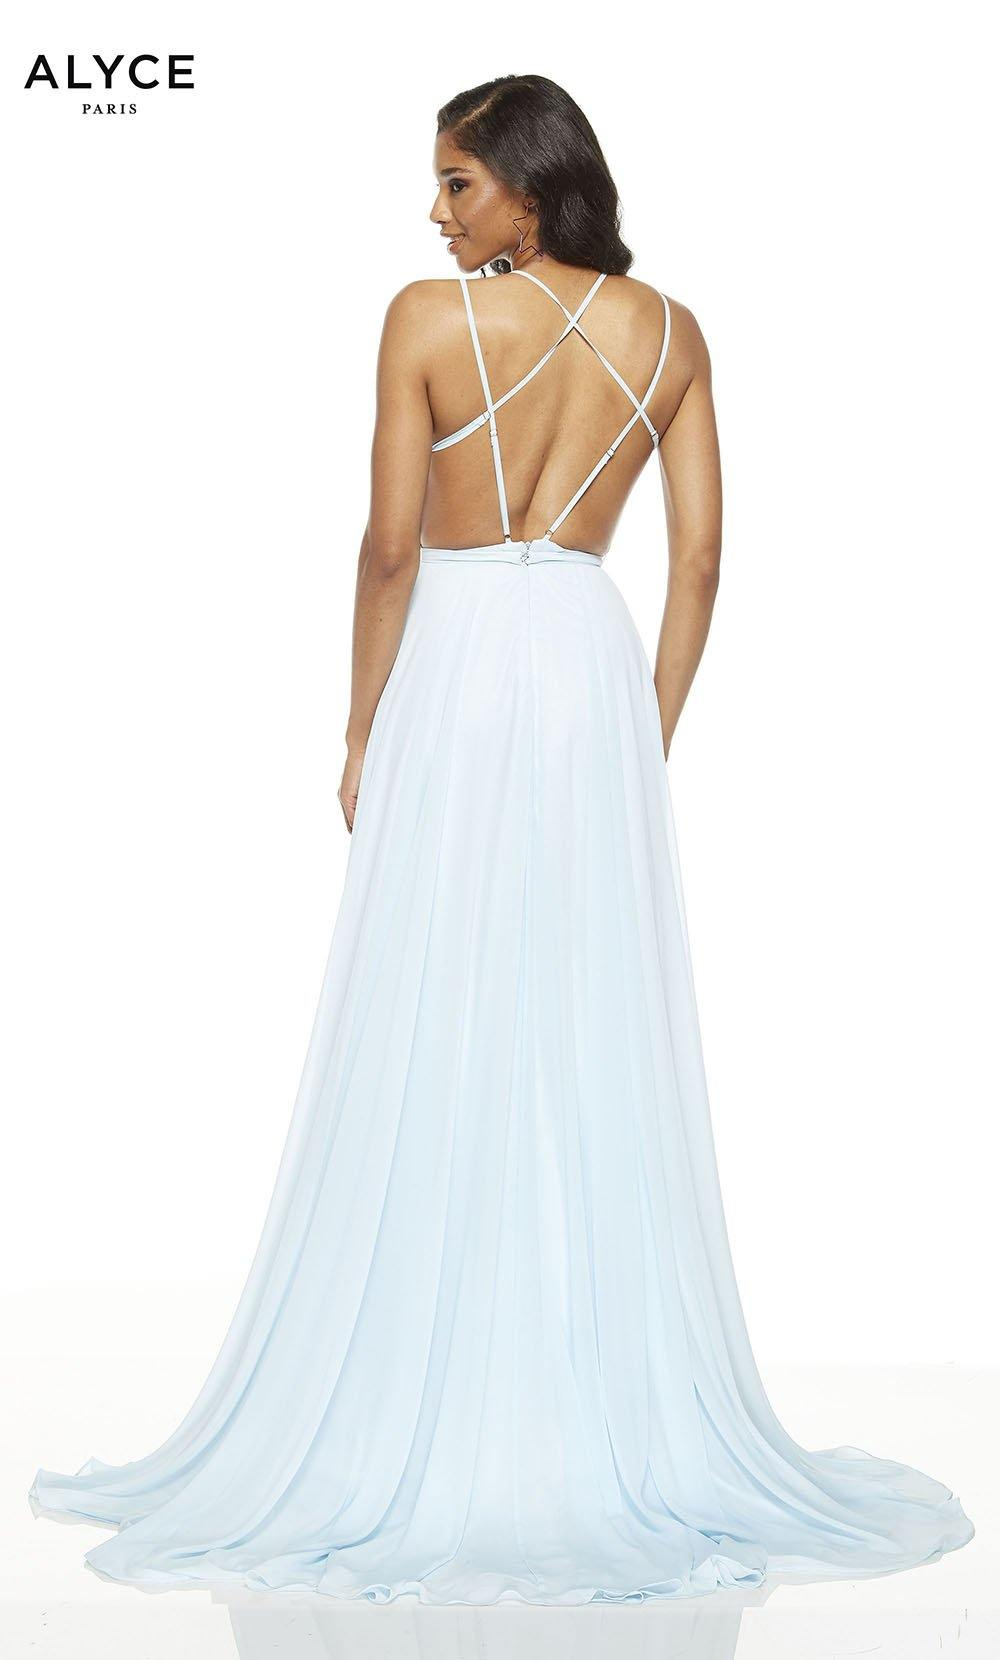 Powder Blue flowy wedding guest dress with a strappy back